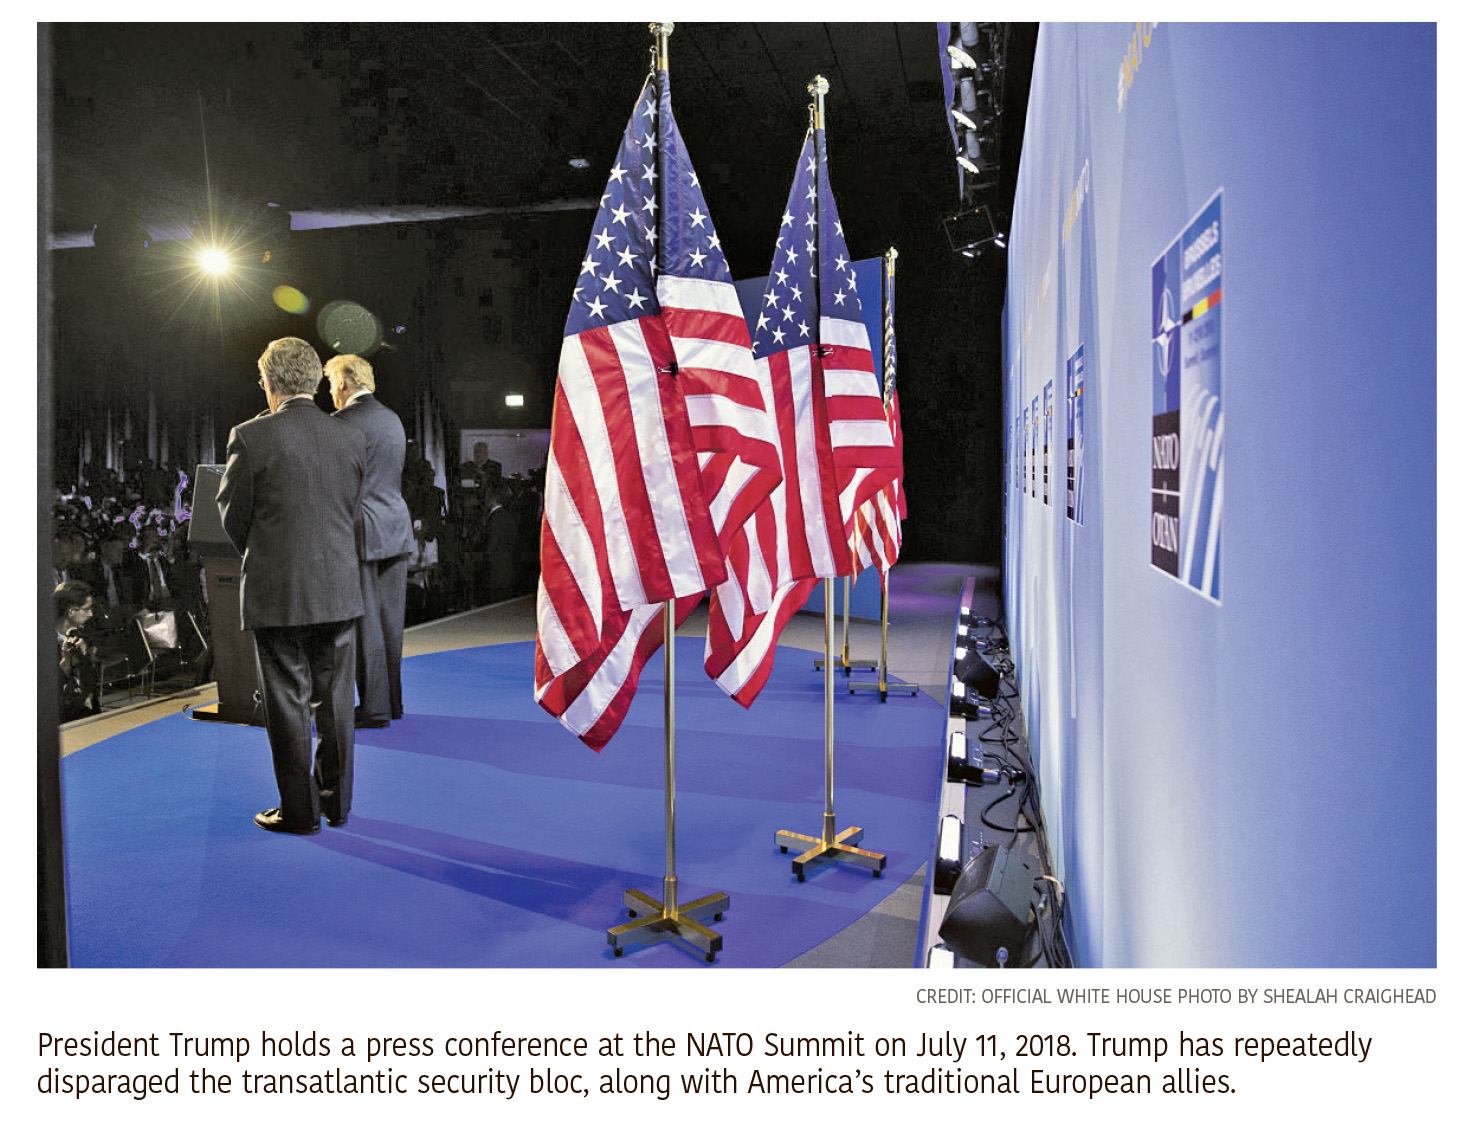 a6.review.empty.throne.nato.story